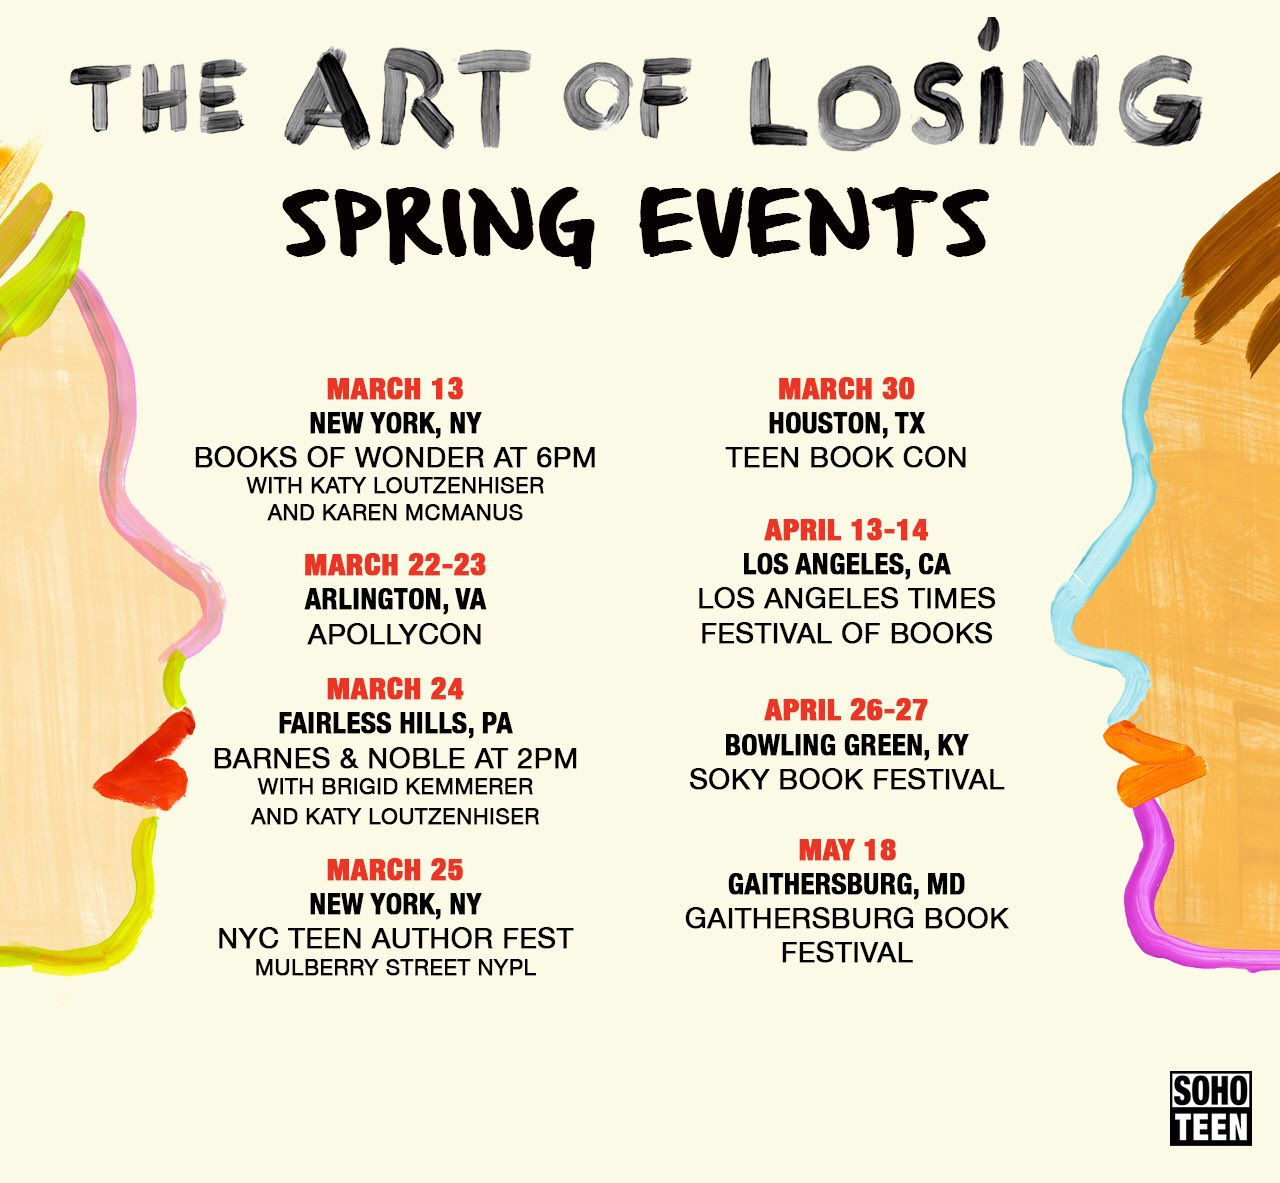 Lizzy Mason On Twitter Spring Events For The Art Of Losing I Can T Wait To See So Many Faces I Love